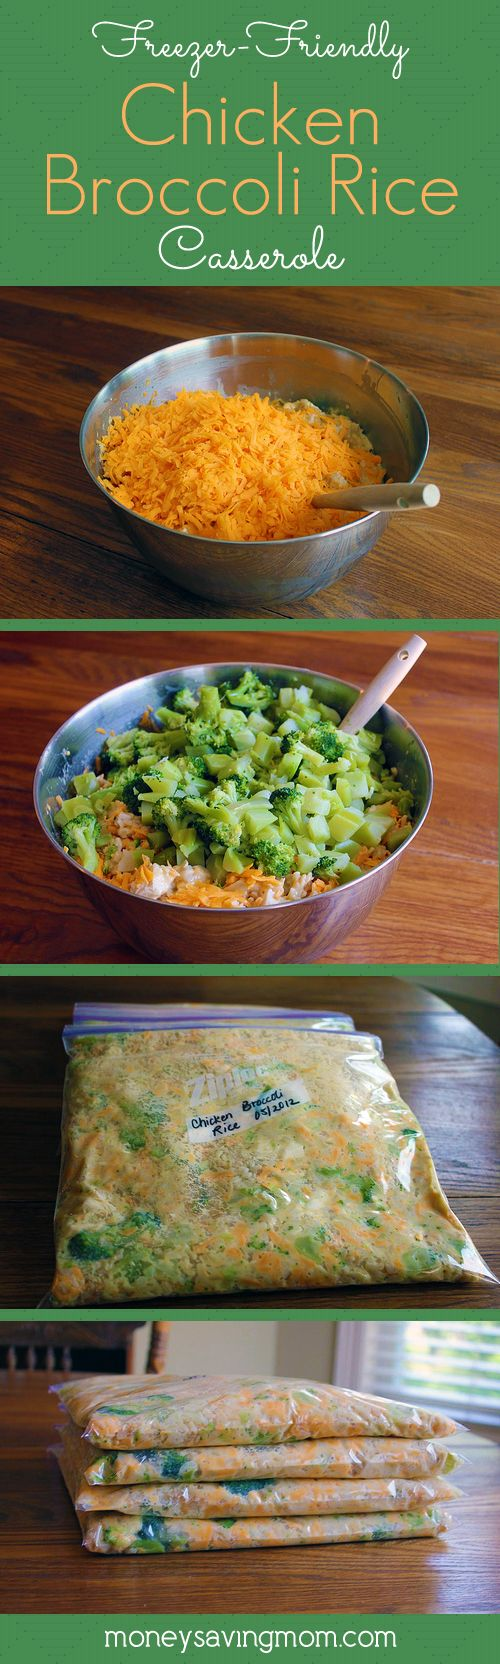 "Freezer Friendly Chicken Broccoli Rice Casserole Recipe via Money Saving Mom -- makes (4) 8x8 casseroles. Need: 10 c. cooked rice (white or brown); 4 c. cooked chicken, chopped; 4 c. chopped broccoli, lightly steamed (can use frozen or fresh); 2 cans cream of mushroom soup; 2 cans cream of chicken soup; 4 c. shredded cheddar cheese; salt and pepper to taste. (Also has recipe to make your own ""cream of"" soups)"